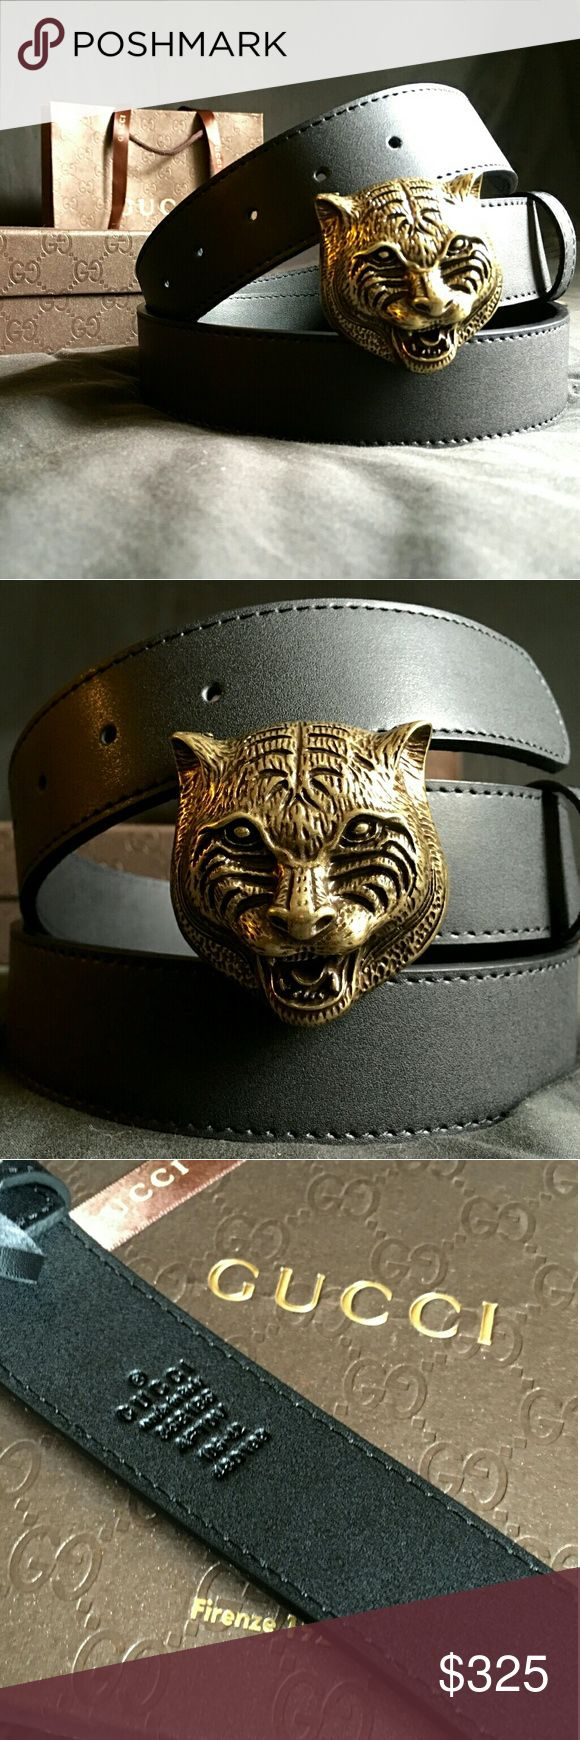 Gucci Feline Belt!!! Gucci Feline Belt W/ Antique Brass Hardware!!!  Brand New!!!  Unisex....For Man Or Woman!!!  Size Available - 36, 38, 40, 42!!!  Includes Gucci Belt, Gift Box, Dust Bag, Ribbon, Etc!!!  Great Gift Idea!!!  Last Available!!!  Check My Listings For Other Great Items!!!             Ignore: Gucci gg monogram casual dress belts men's women's guccissma leather monogram web tiger bee embossed panther wool cable knit blooms supreme print angry cat ufo dragon studded snake double…